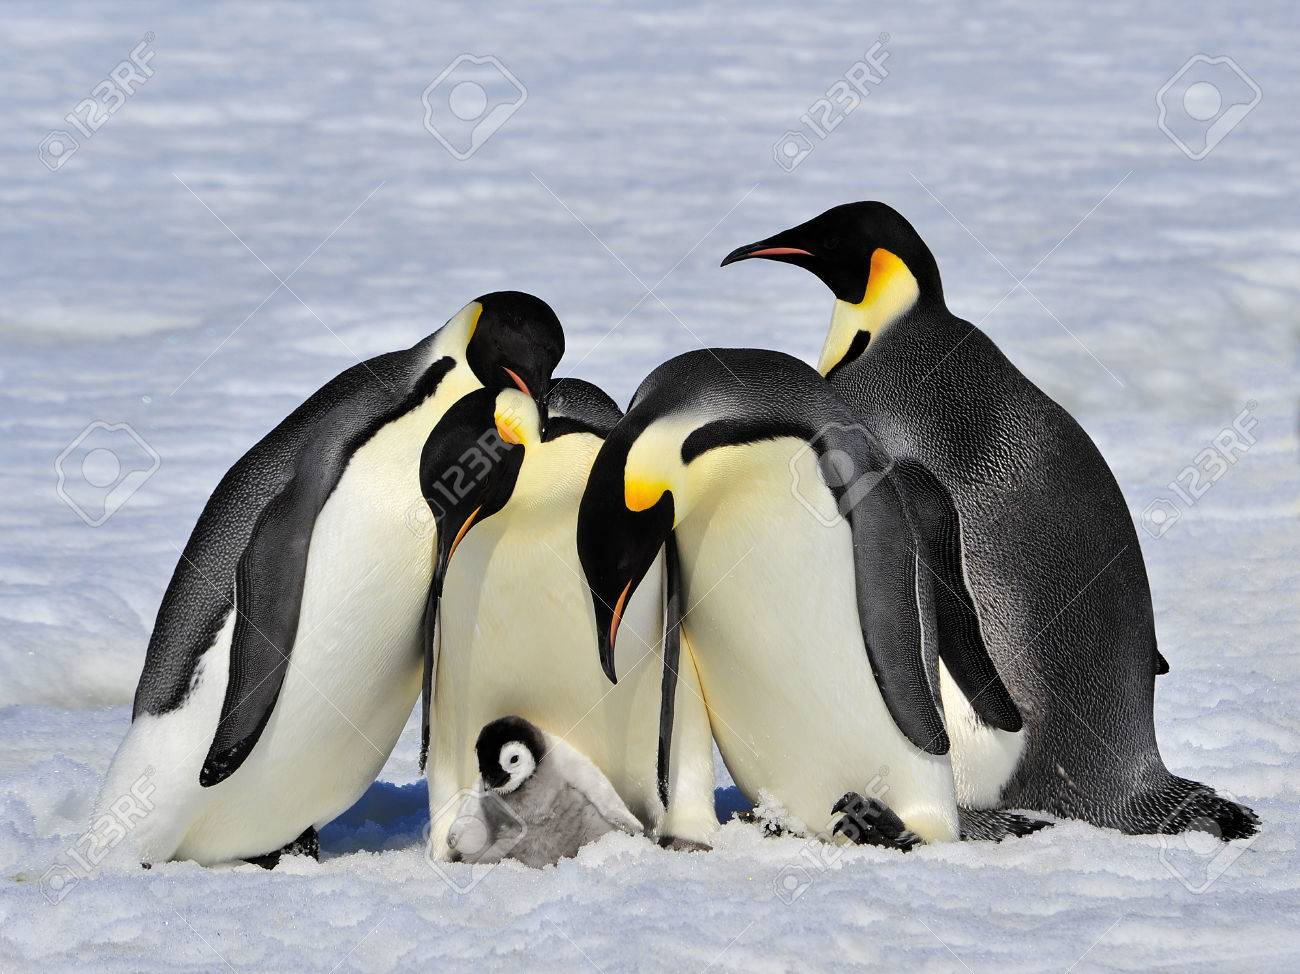 Emperor Penguins with chick fight for adopting - 56089627